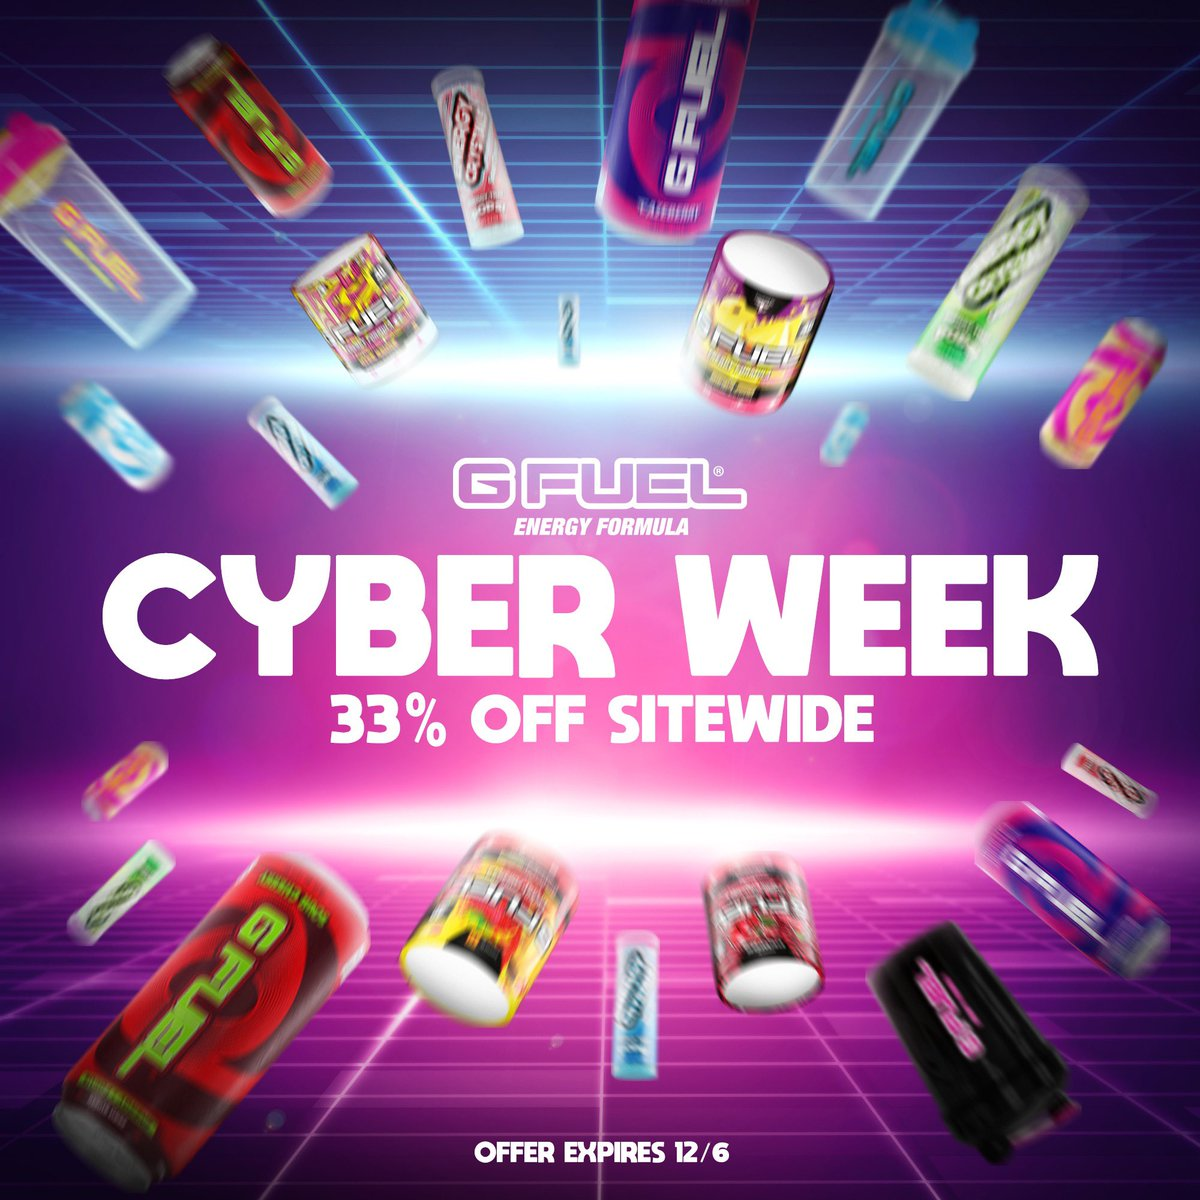 """⚠️ PROMO UPDATE ⚠️  Today is the LAST DAY to use Promo Code """"CYBERWEEK"""" for 33% OFF on ALL #GFUEL ORDERS, folks!!! Head to the link below to get in on the action!  SHOP: https://t.co/ypKCuX9ApE ⚡️ https://t.co/dY9IVL3CGq"""